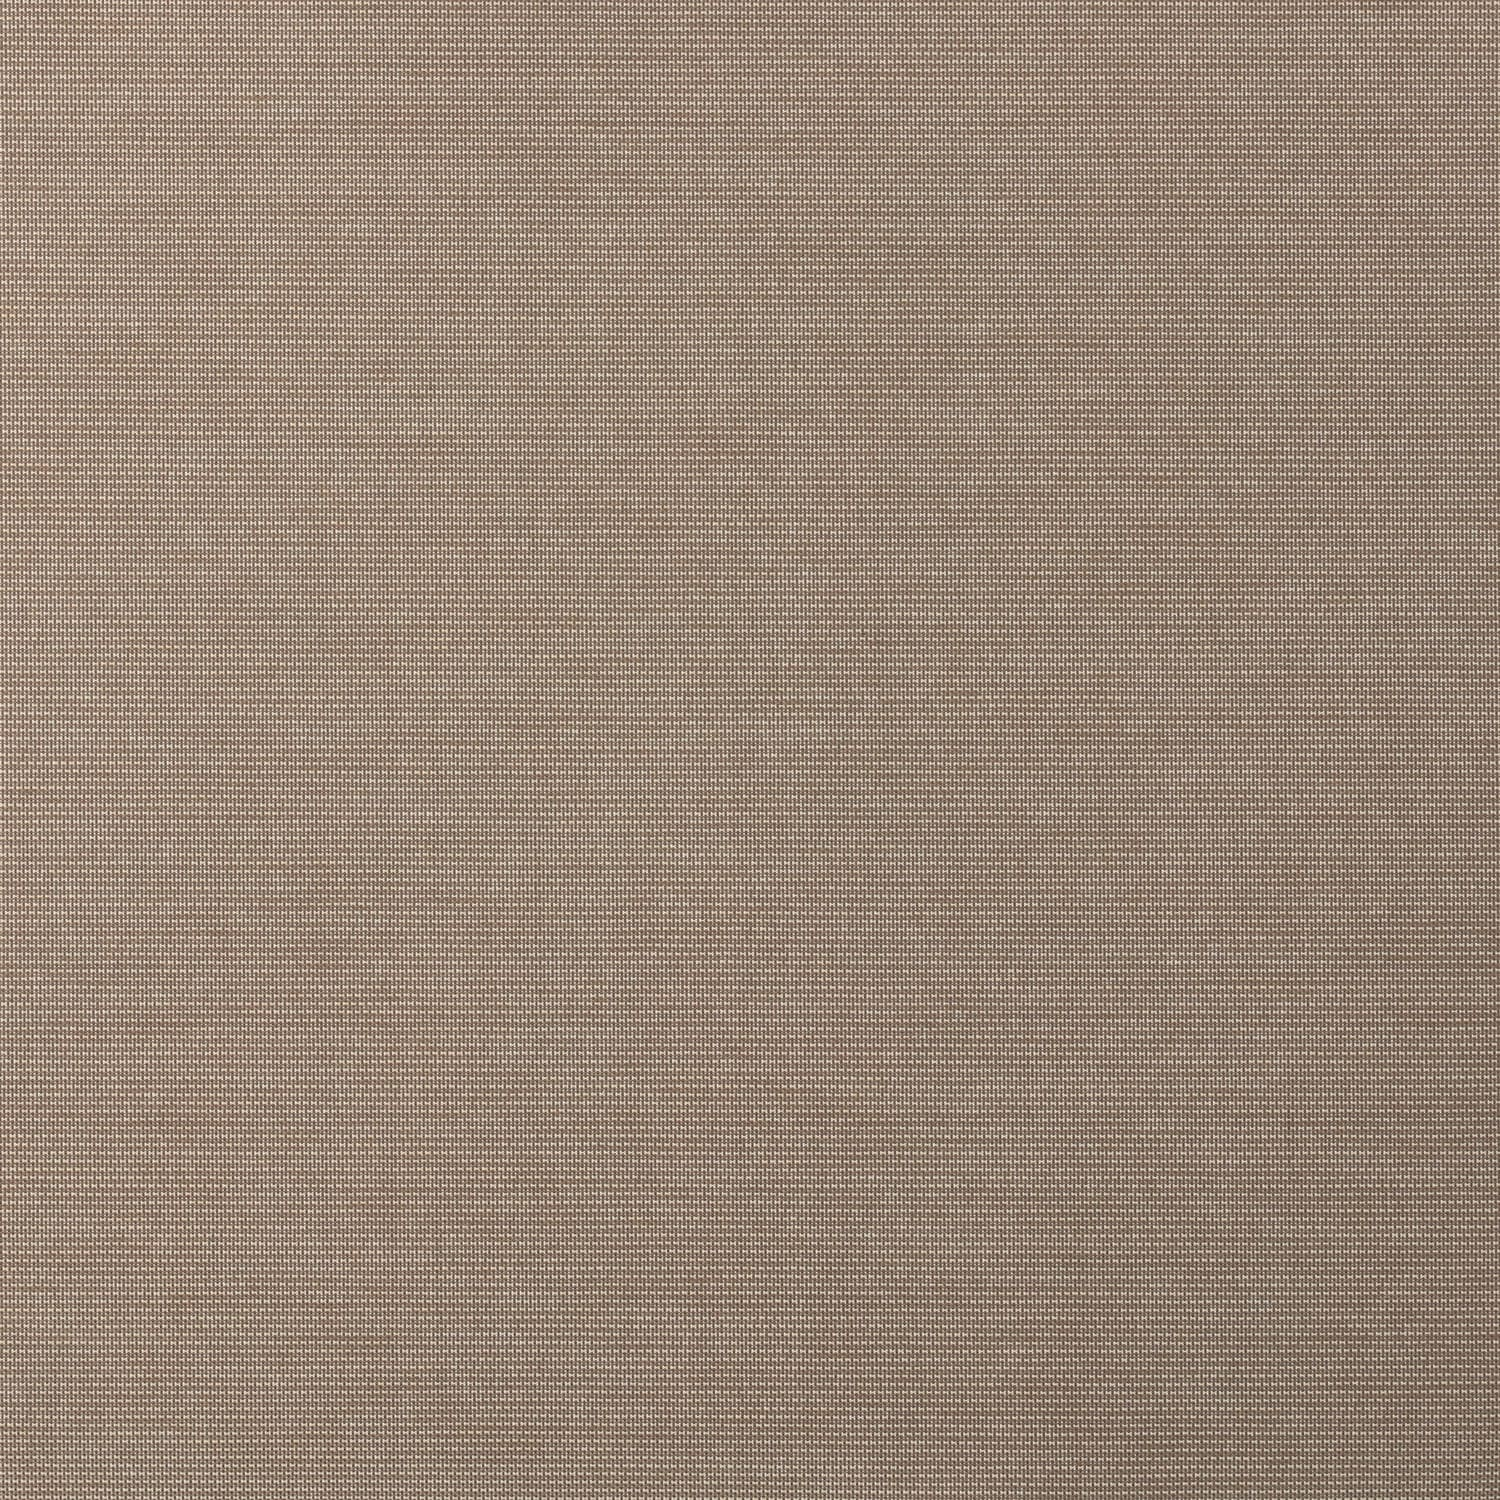 Crescent Taupe GrosgrainWeave Textured Blackout Roller Shade Swatch